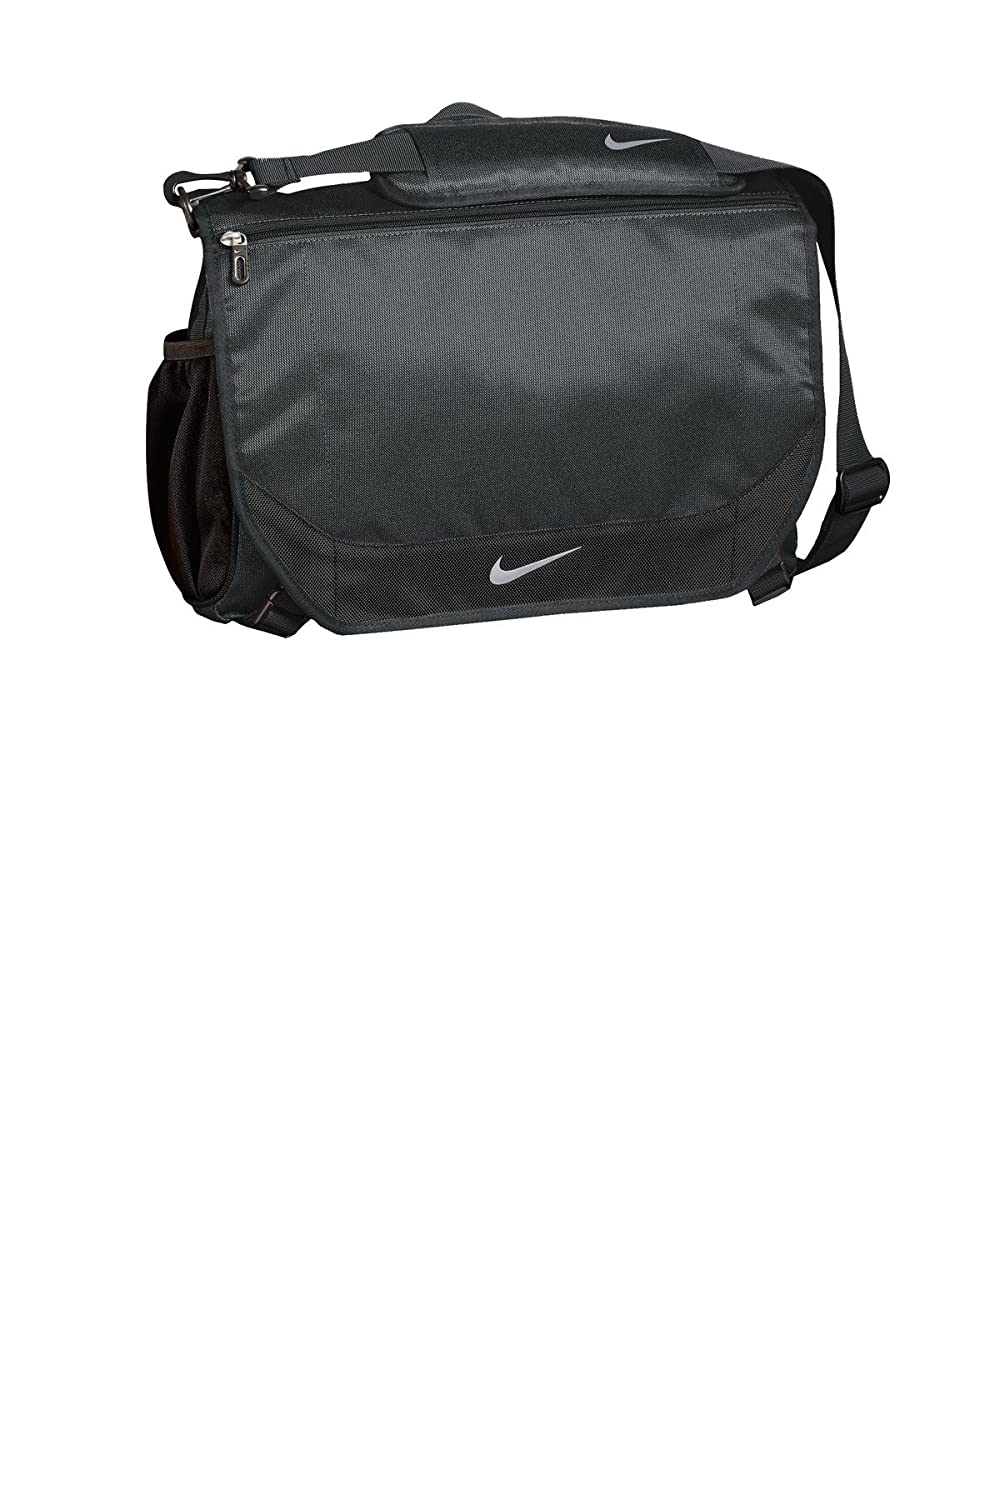 05f3784853 Nike Golf Performance Messenger. TG0245 - Anthracite Black - OSFA   Amazon.ca  Sports   Outdoors